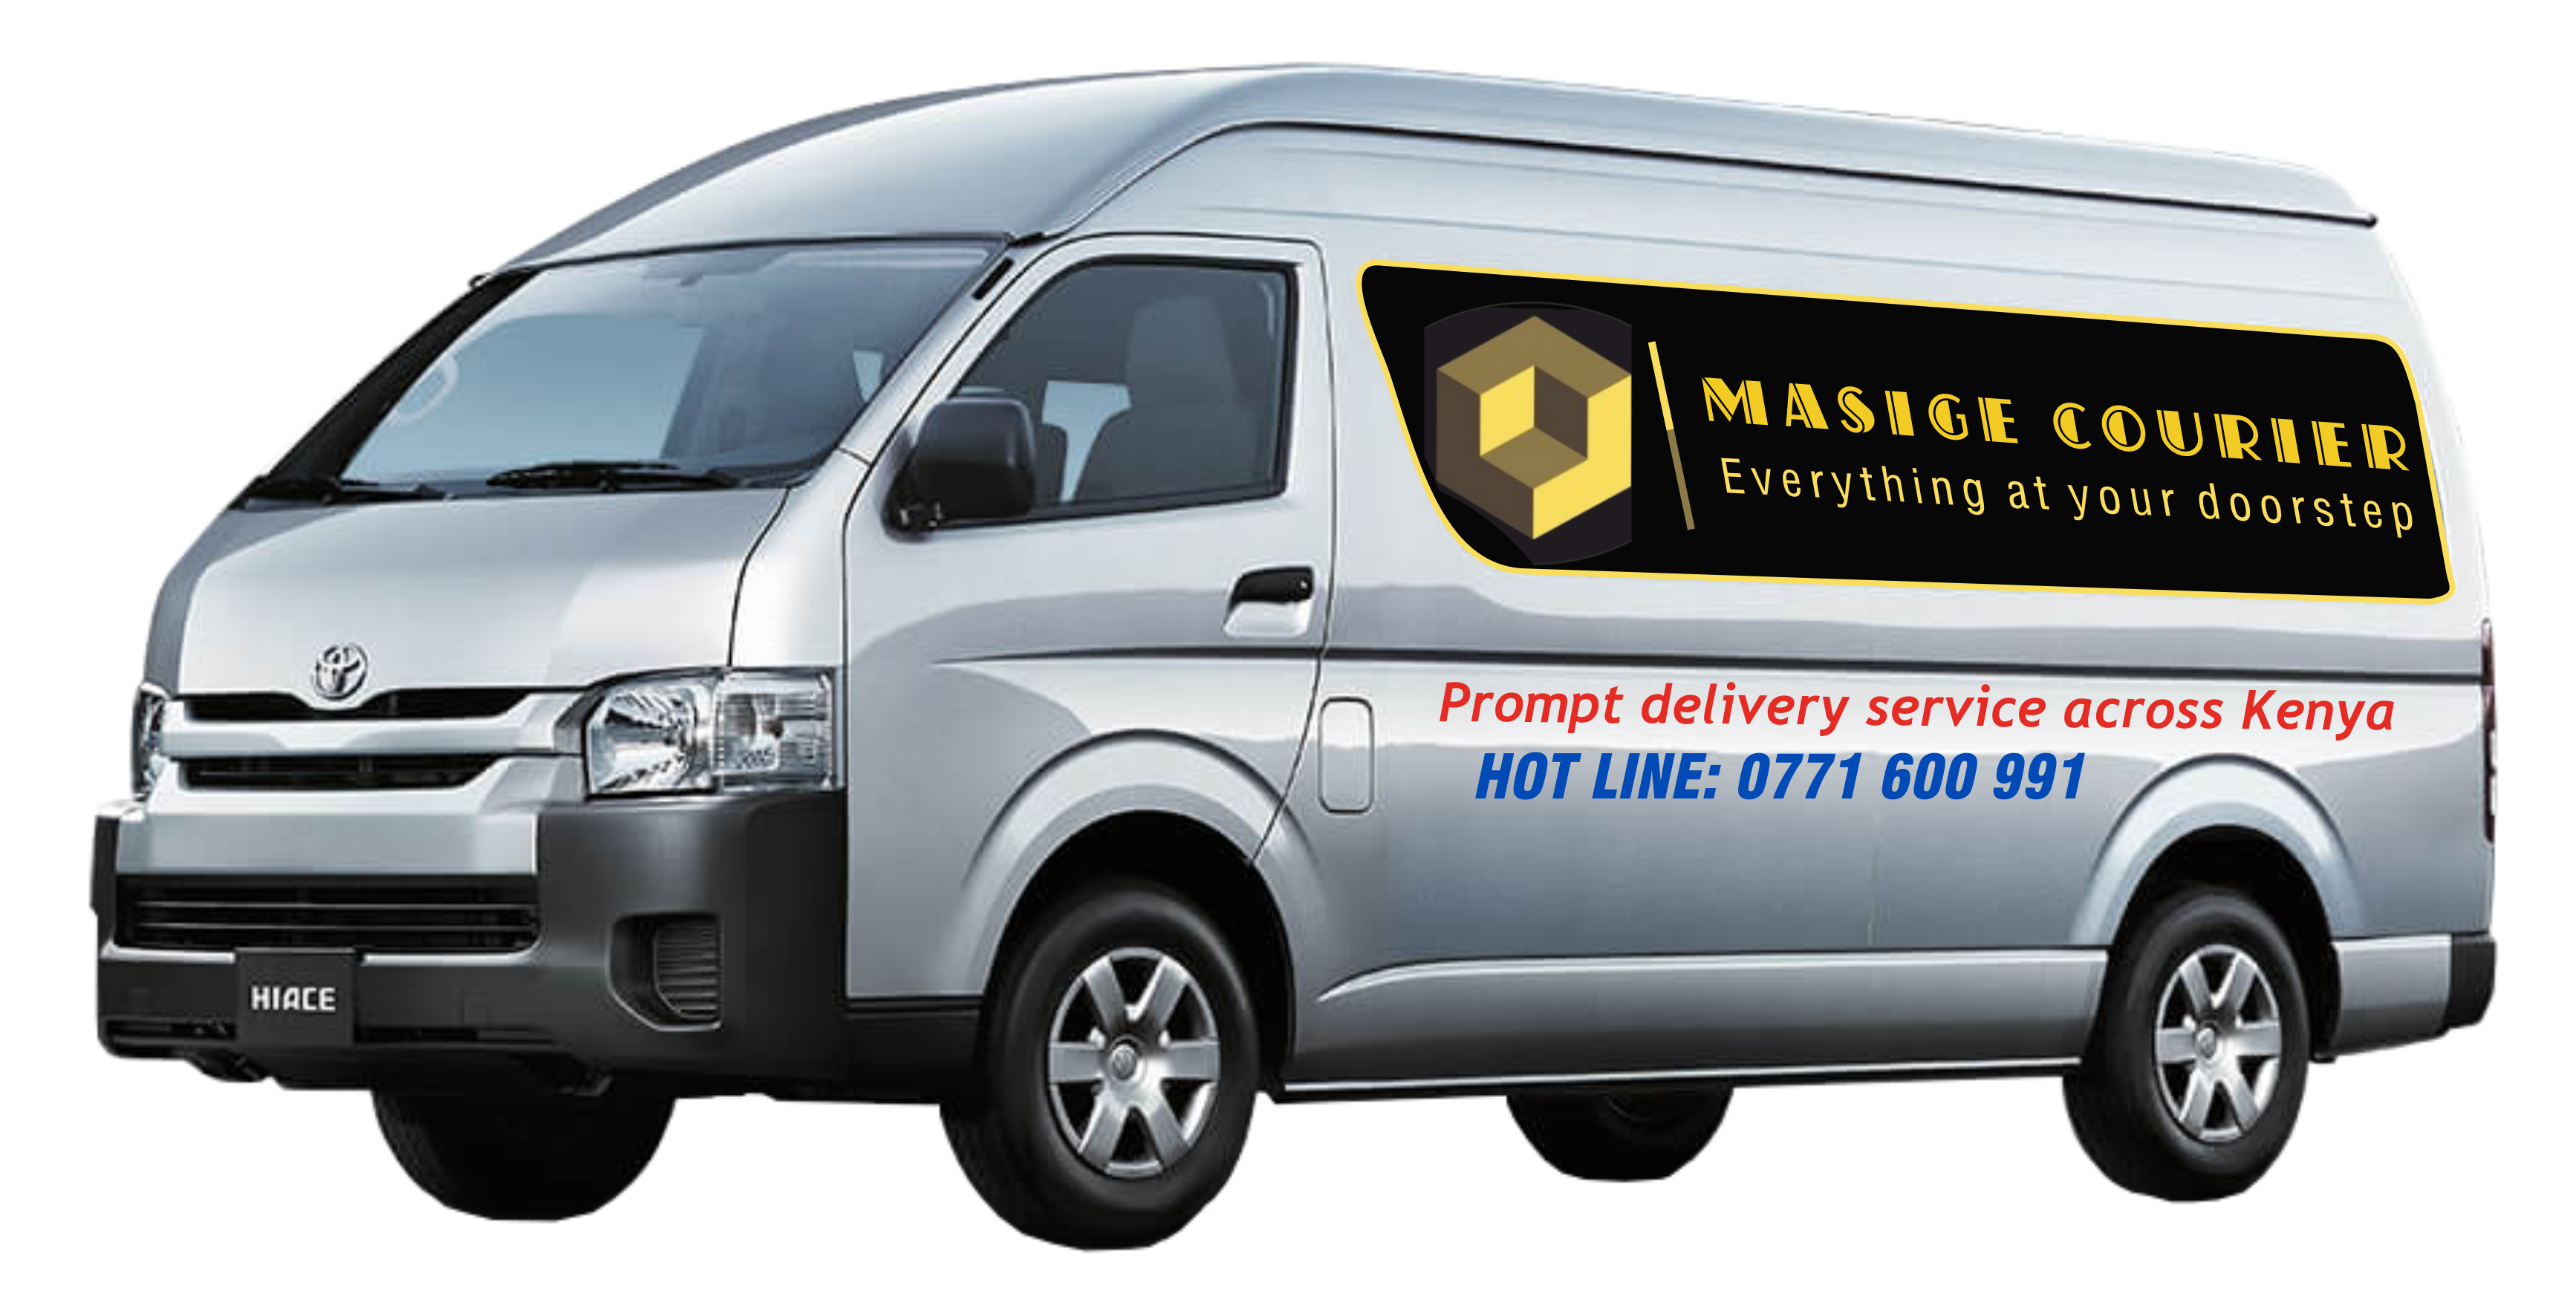 MASIGE COURIER SERVICES IN MOMBASA